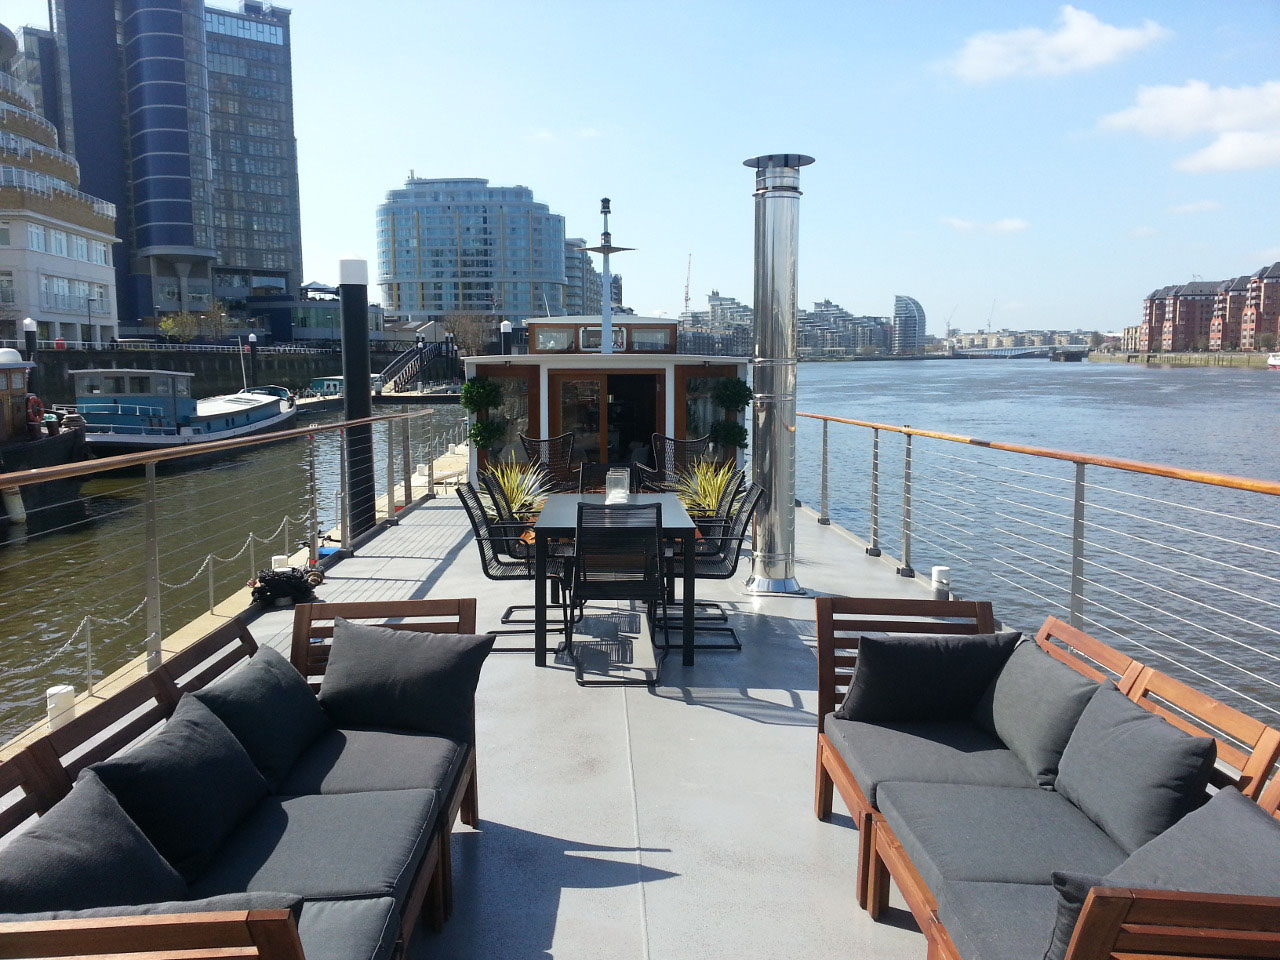 Houseboat by River Thames